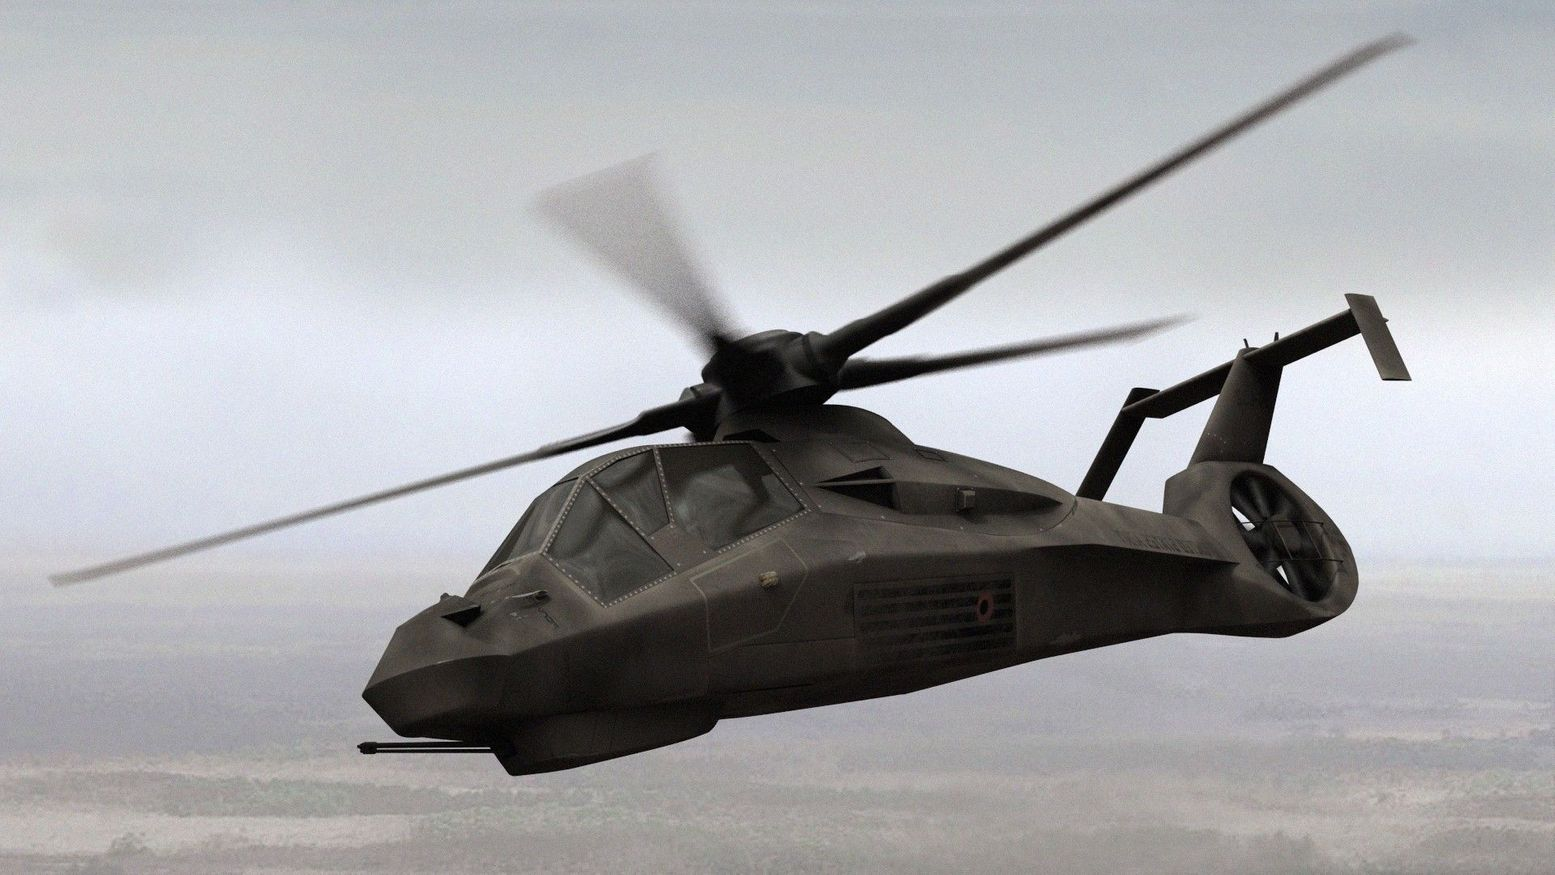 See How the Army's Would-Be Stealth Helicopter Borrowed from the F-35